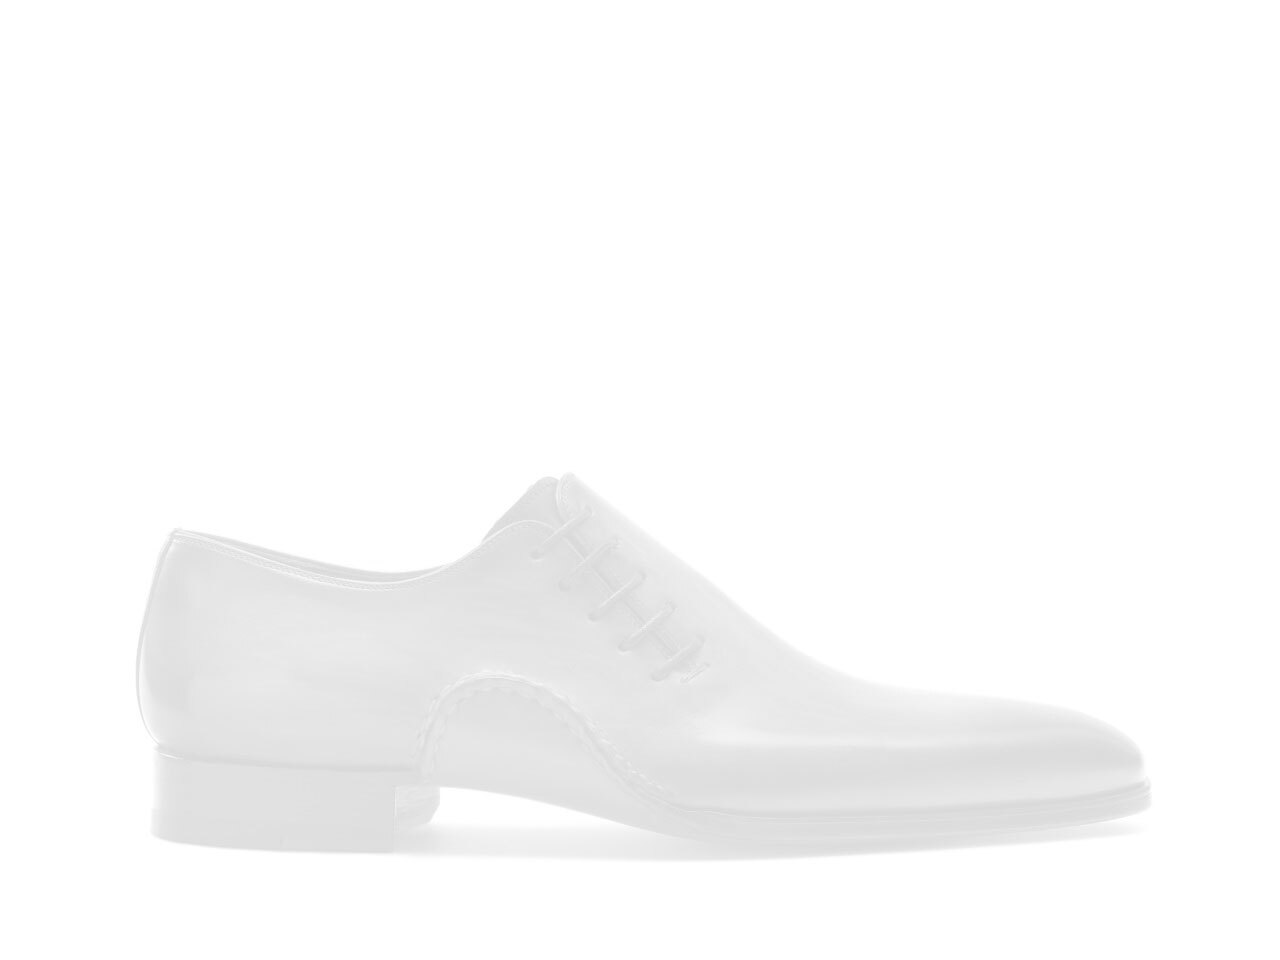 Side view of the Magnanni Tomares Navy Men's Sneakers